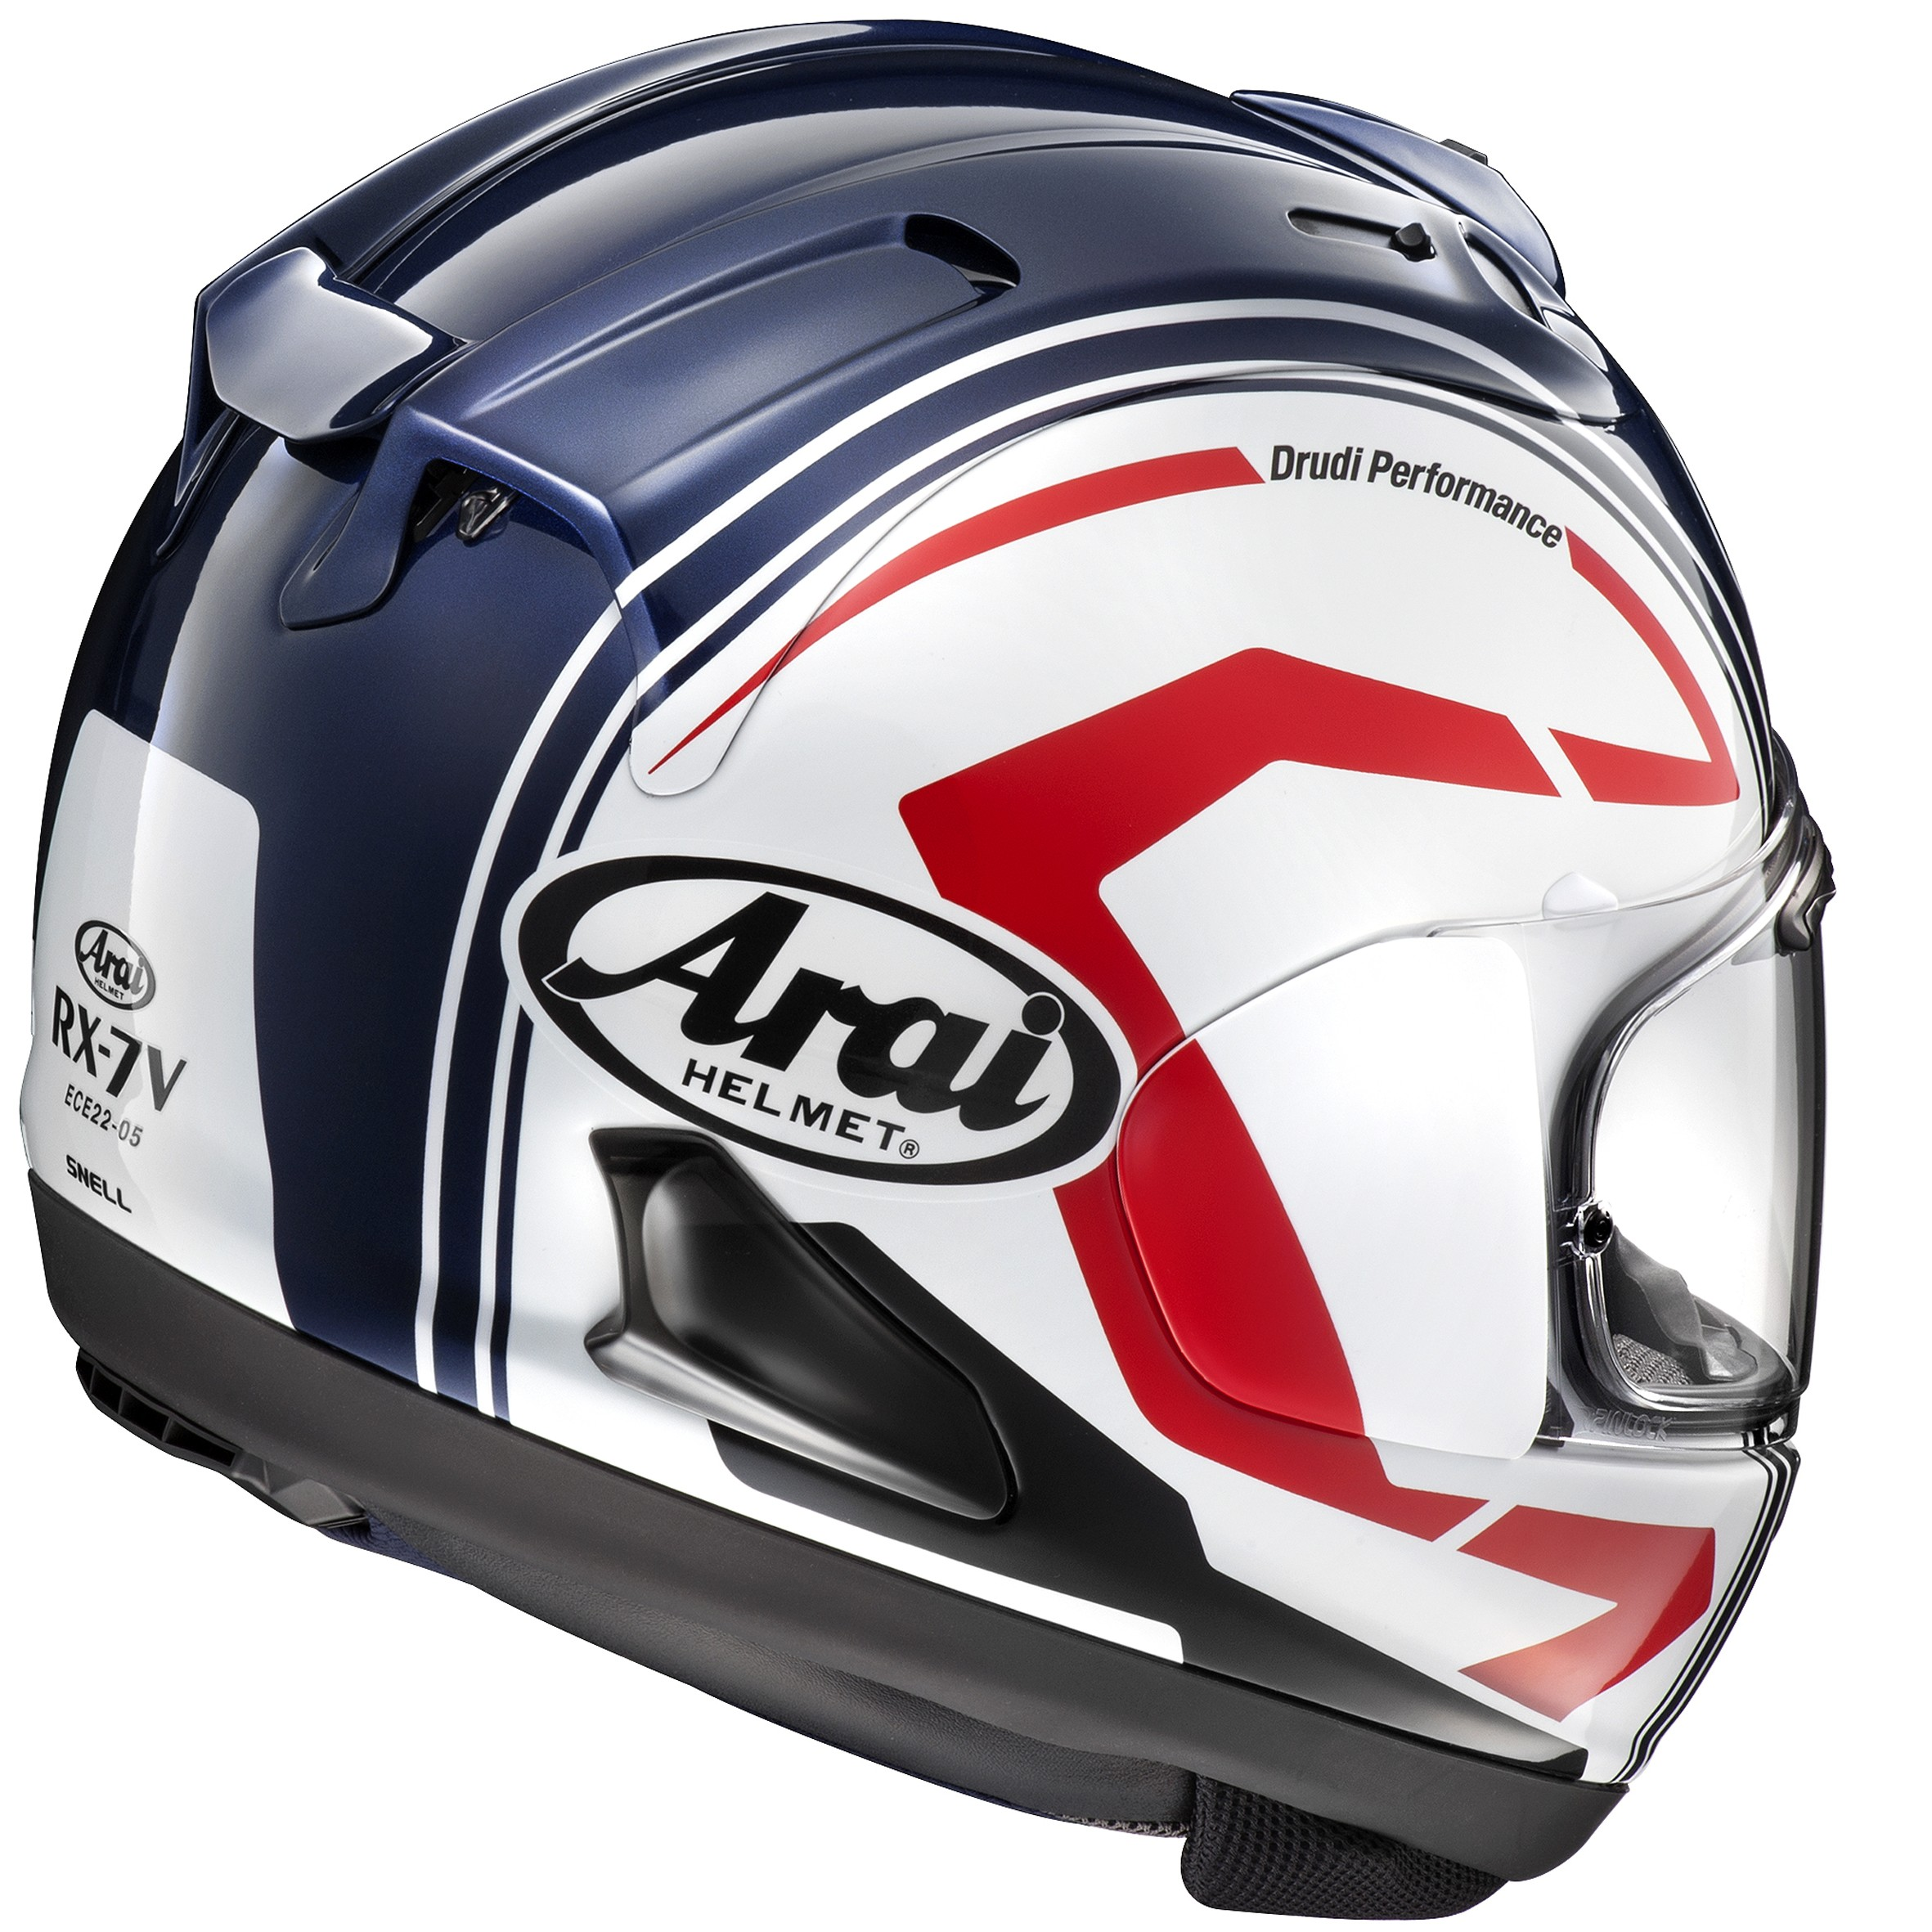 arai rx 7v statement full face helmet. Black Bedroom Furniture Sets. Home Design Ideas